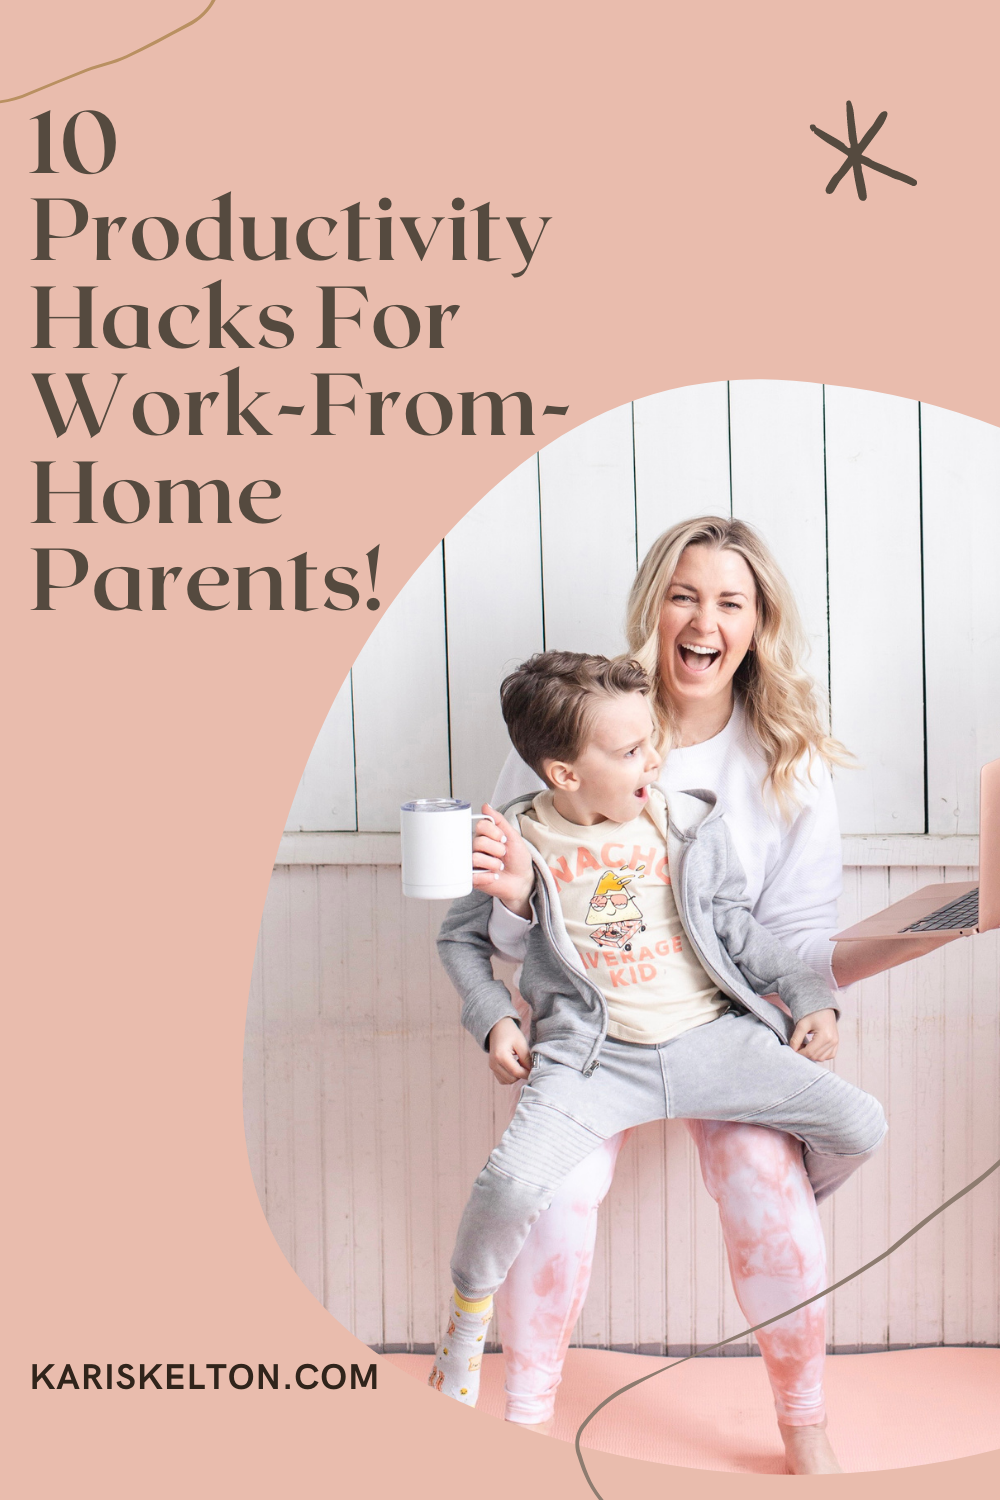 Productivity Hacks For Work-From-Home Parents-10